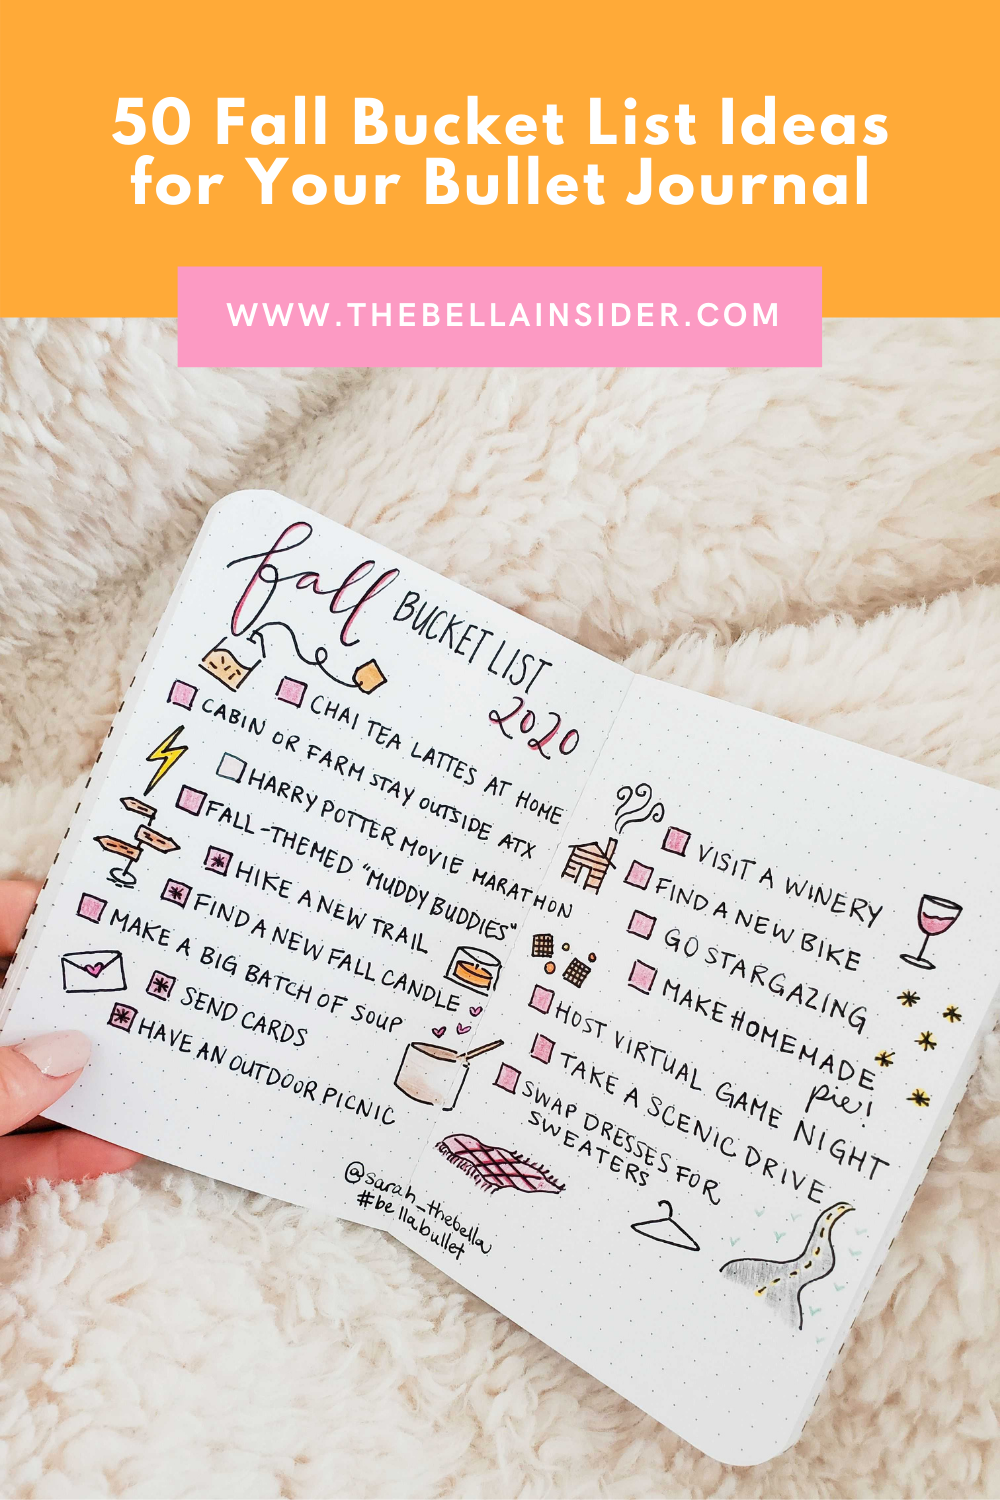 50 Fall Bucket List Ideas for Your Bullet Journal - TheBellaInsider.com